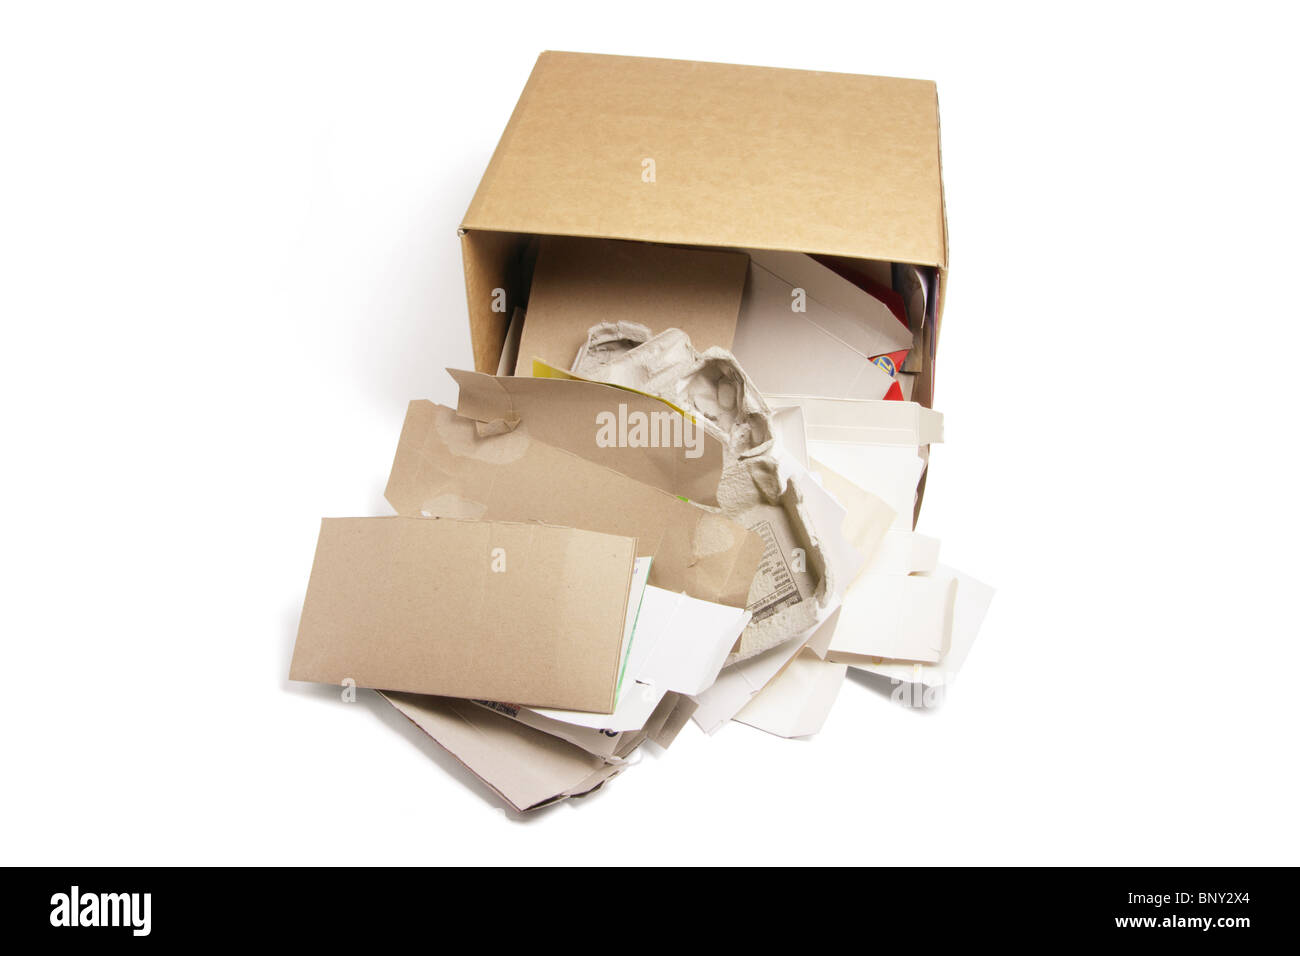 Waste Papers in Cardboard Box - Stock Image